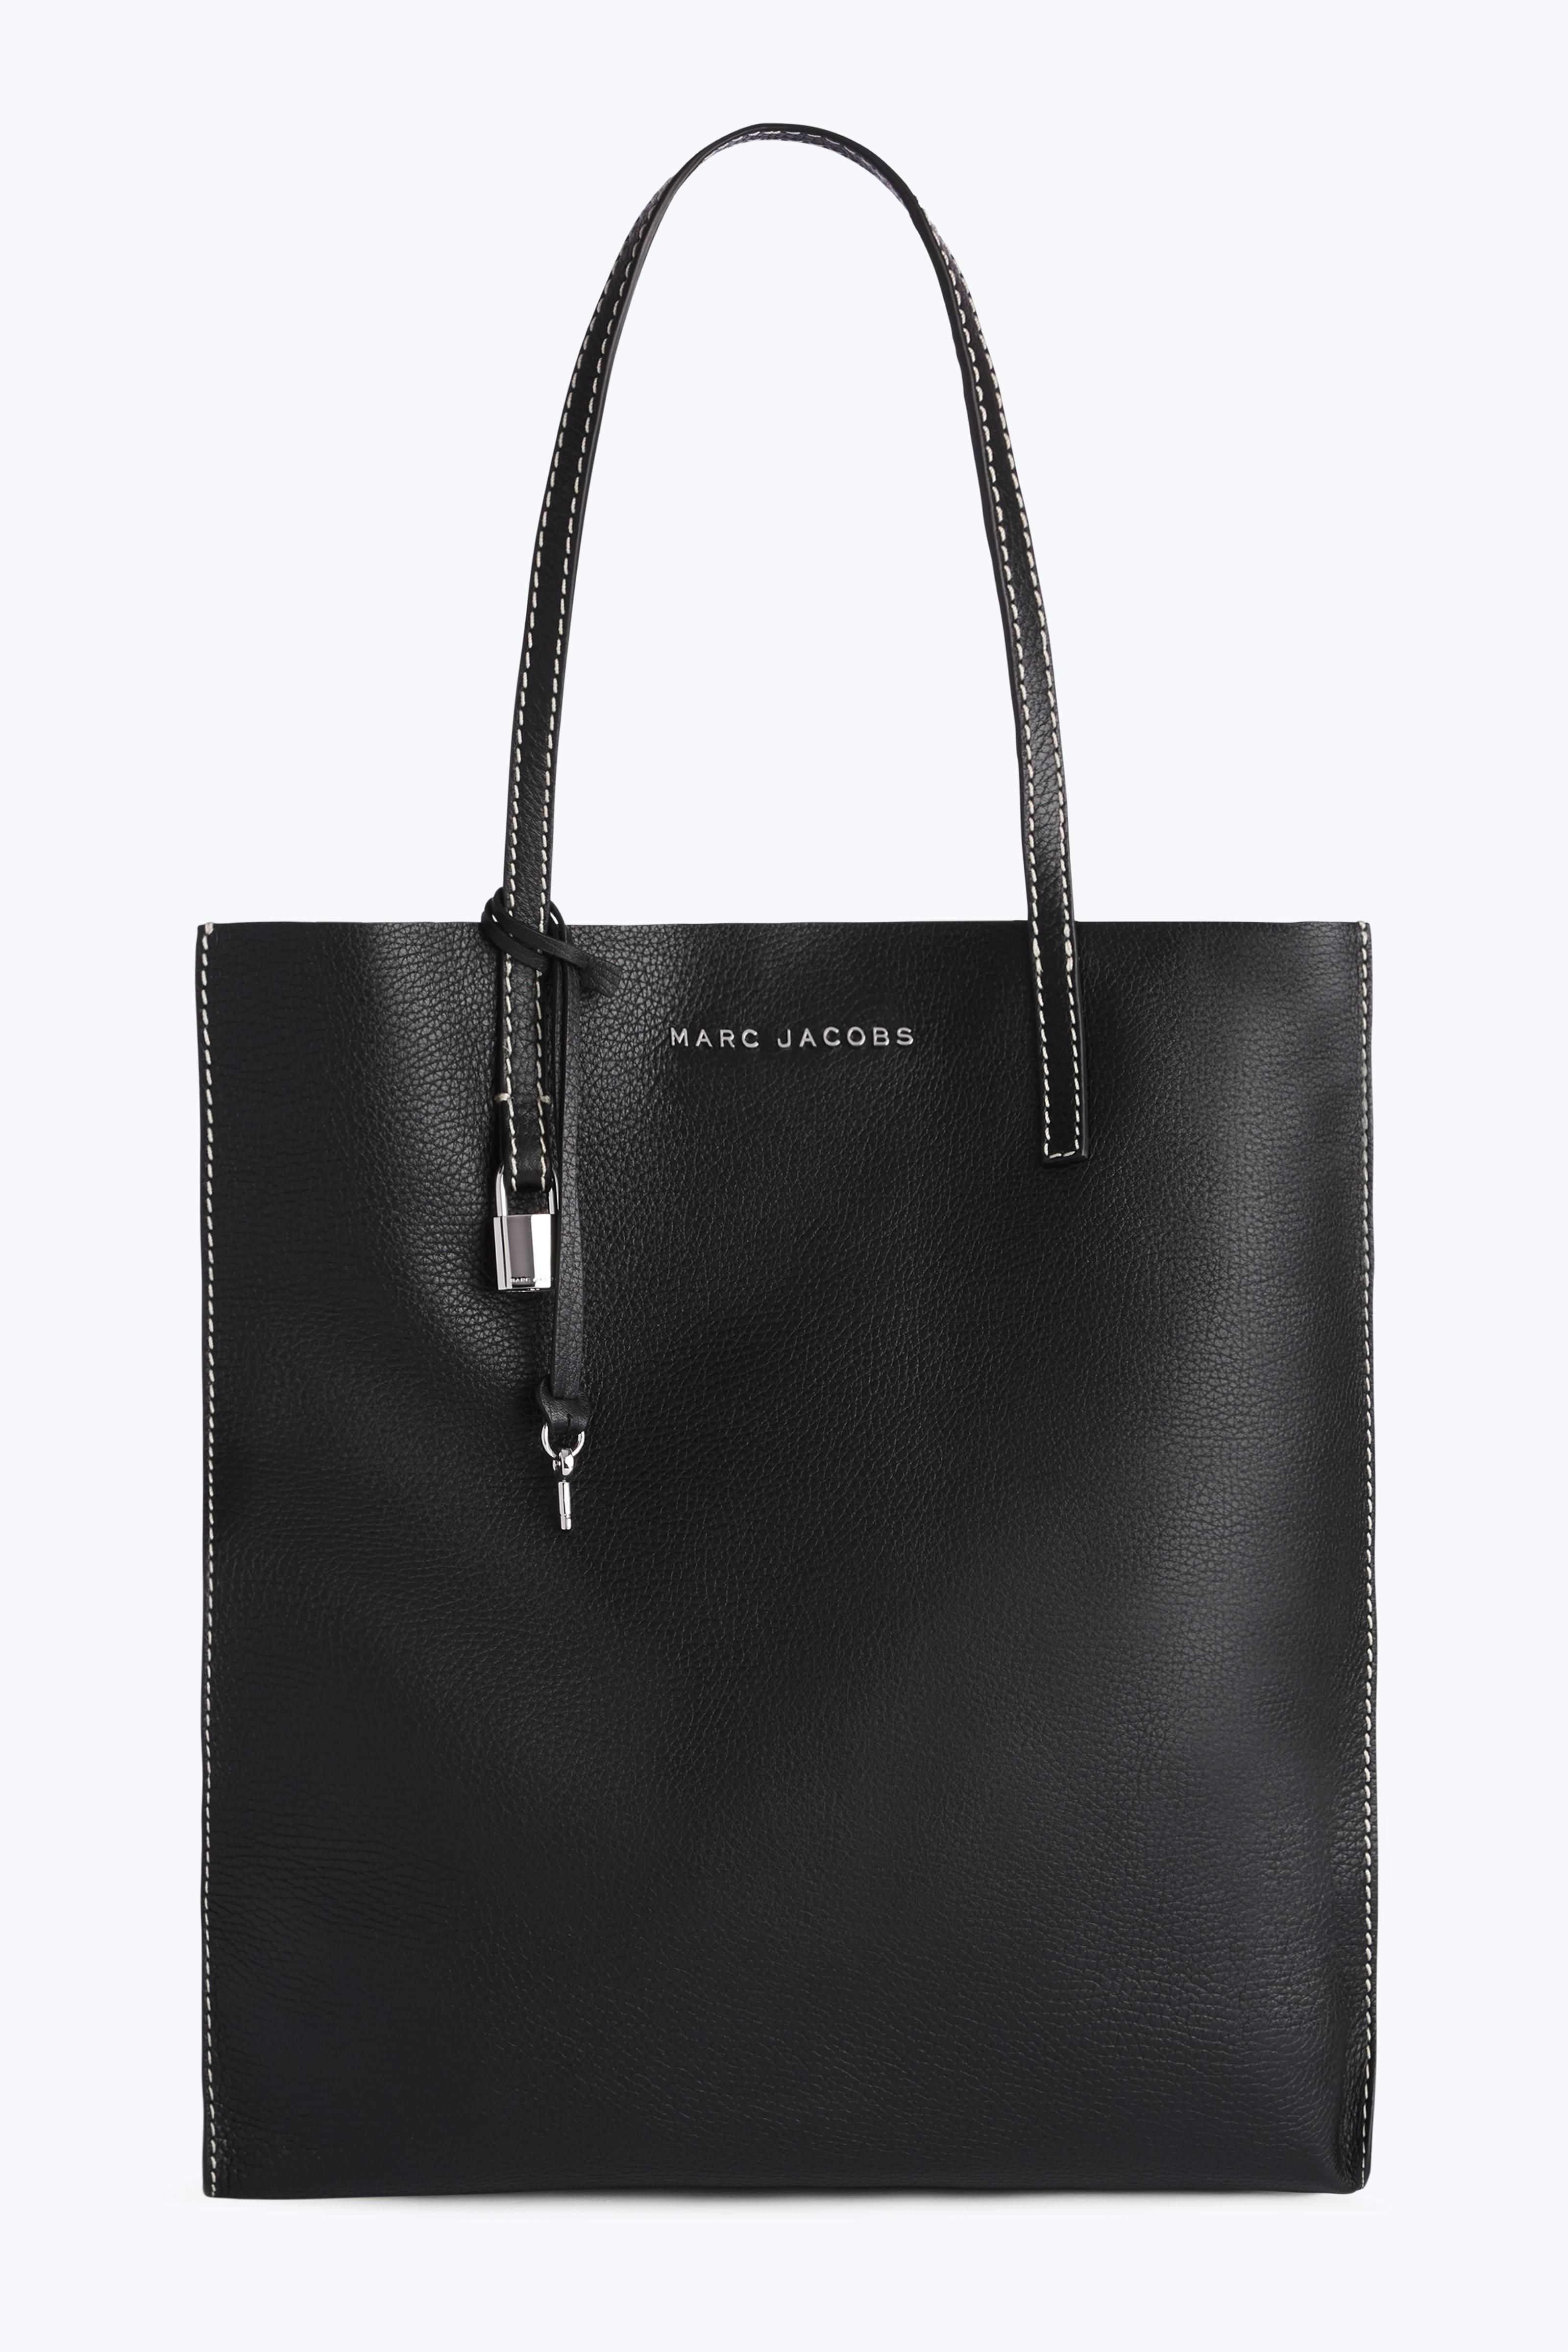 abf0b4847e69 Marc Jacobs The Grind Shopper Tote Back in Black Leather